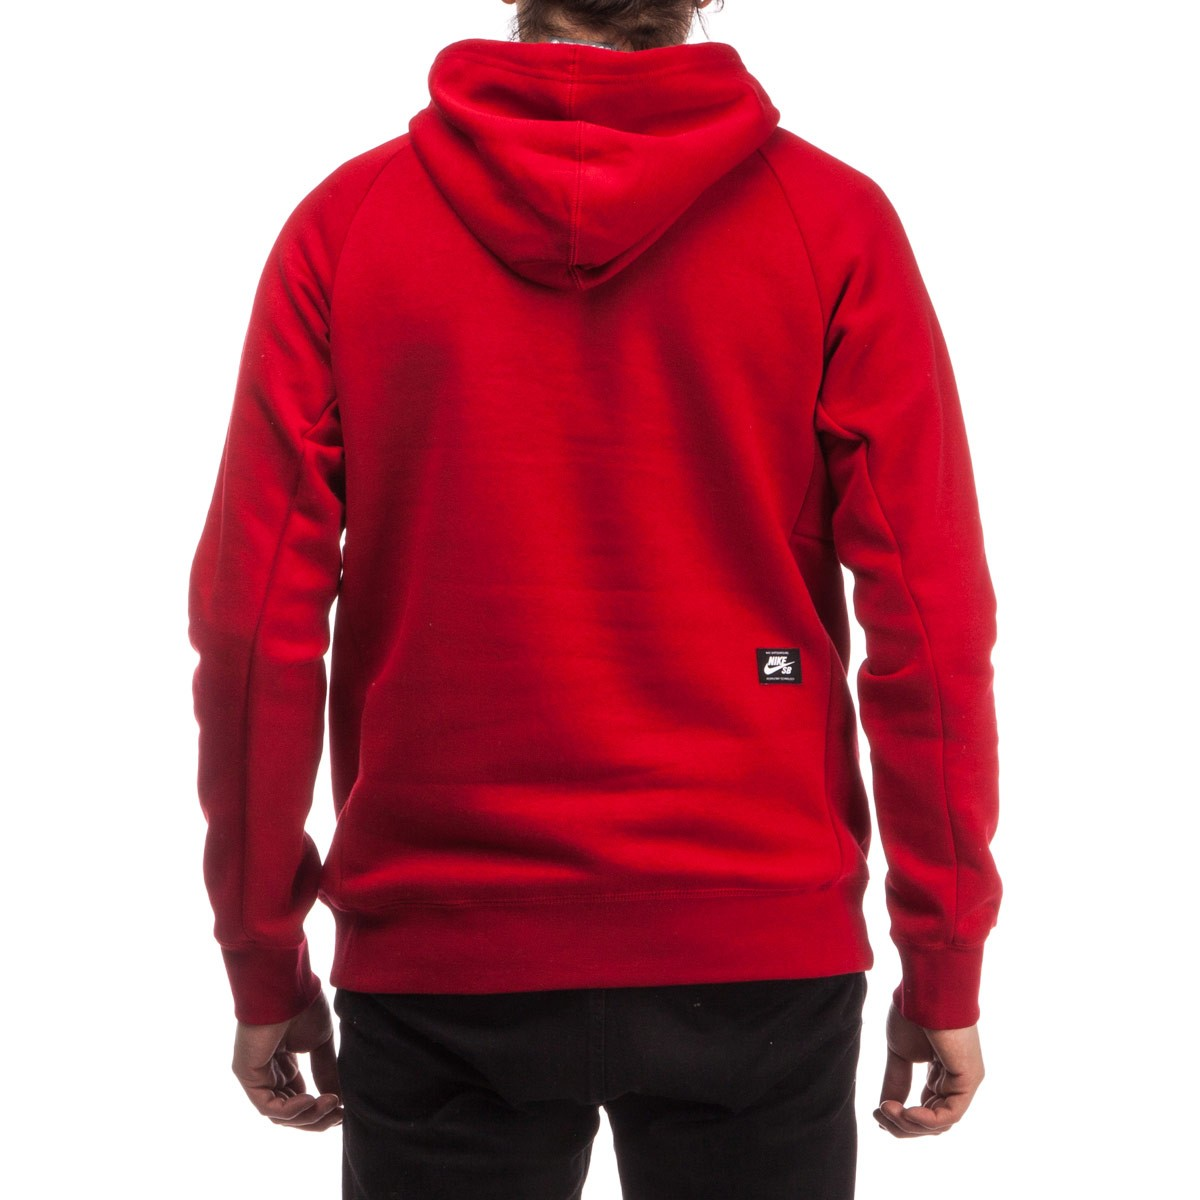 SB Icon Griptape Pullover Hoodie - Red/White